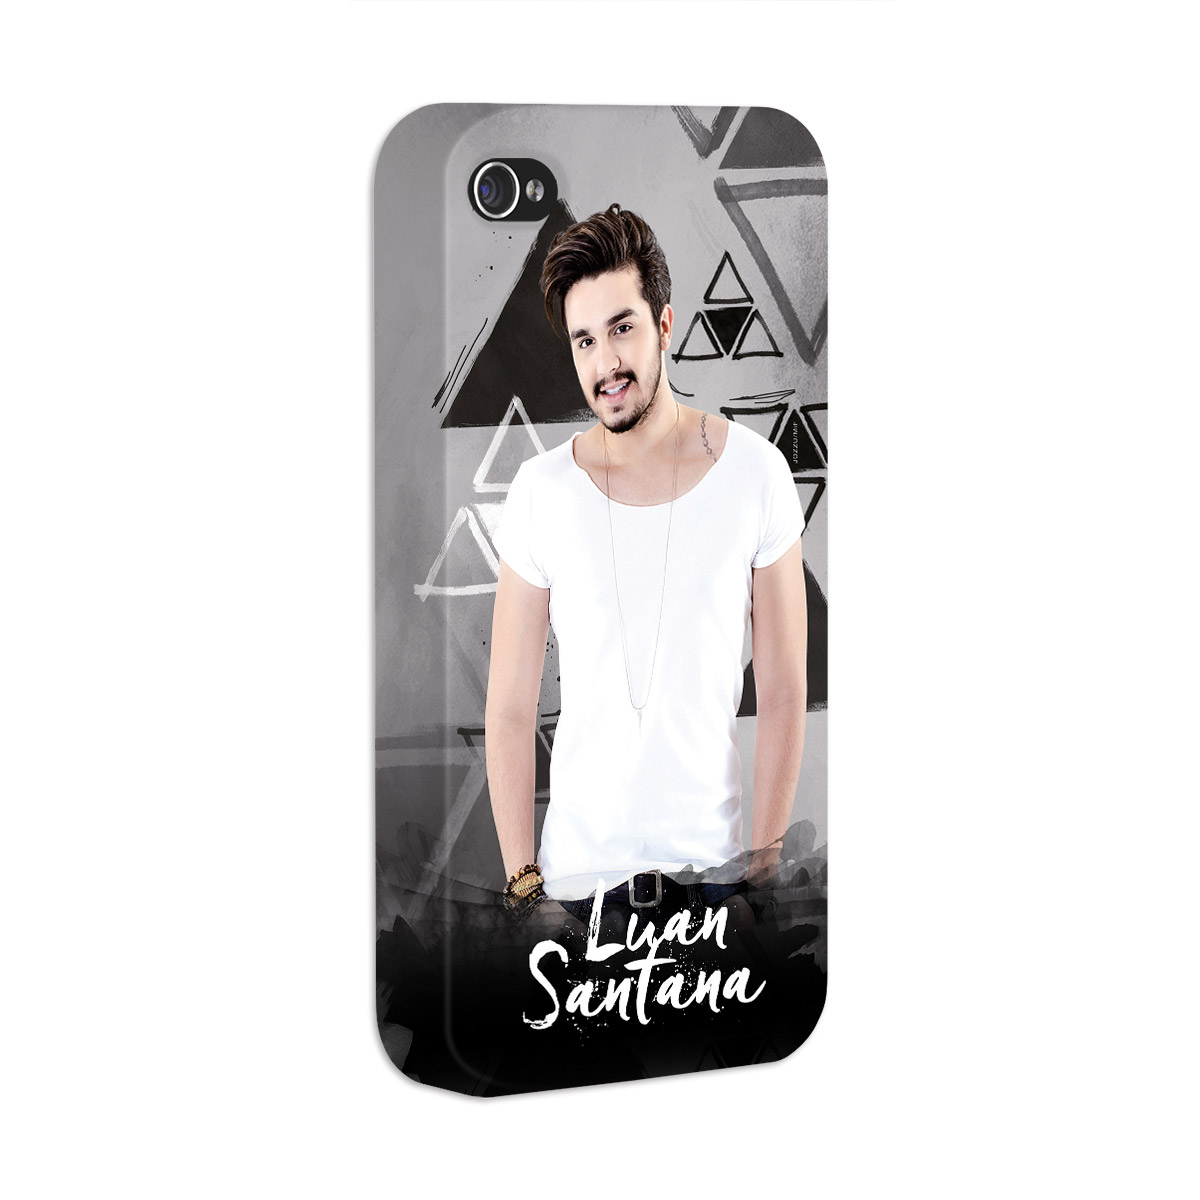 Capa para iPhone 4/4S Luan Santana Picture